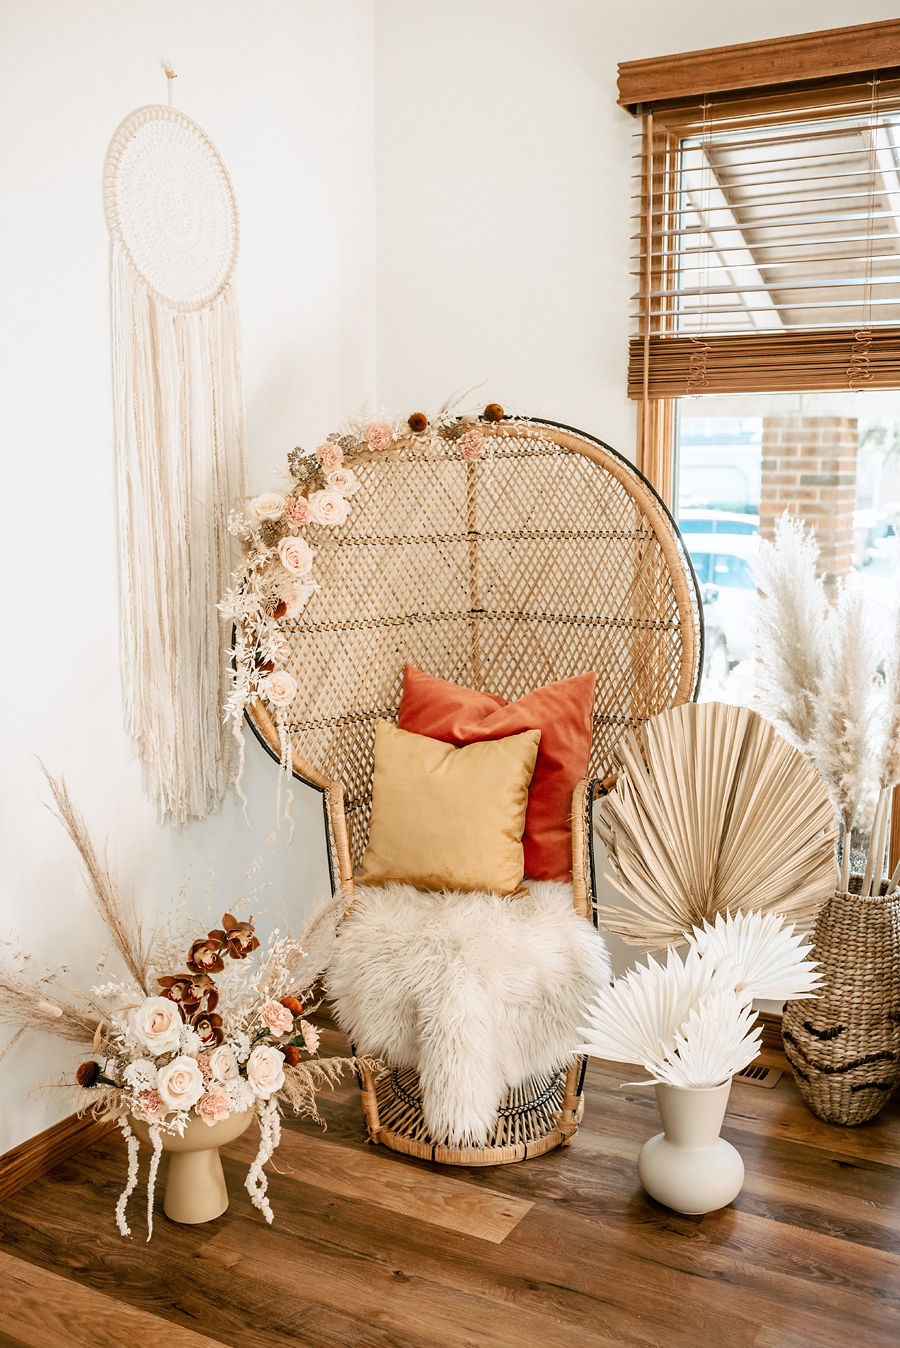 A boho vintage rattan wicker chair at a baby shower is decorated with vintage inspired flowers, pampas grasses, lace and fur throws.